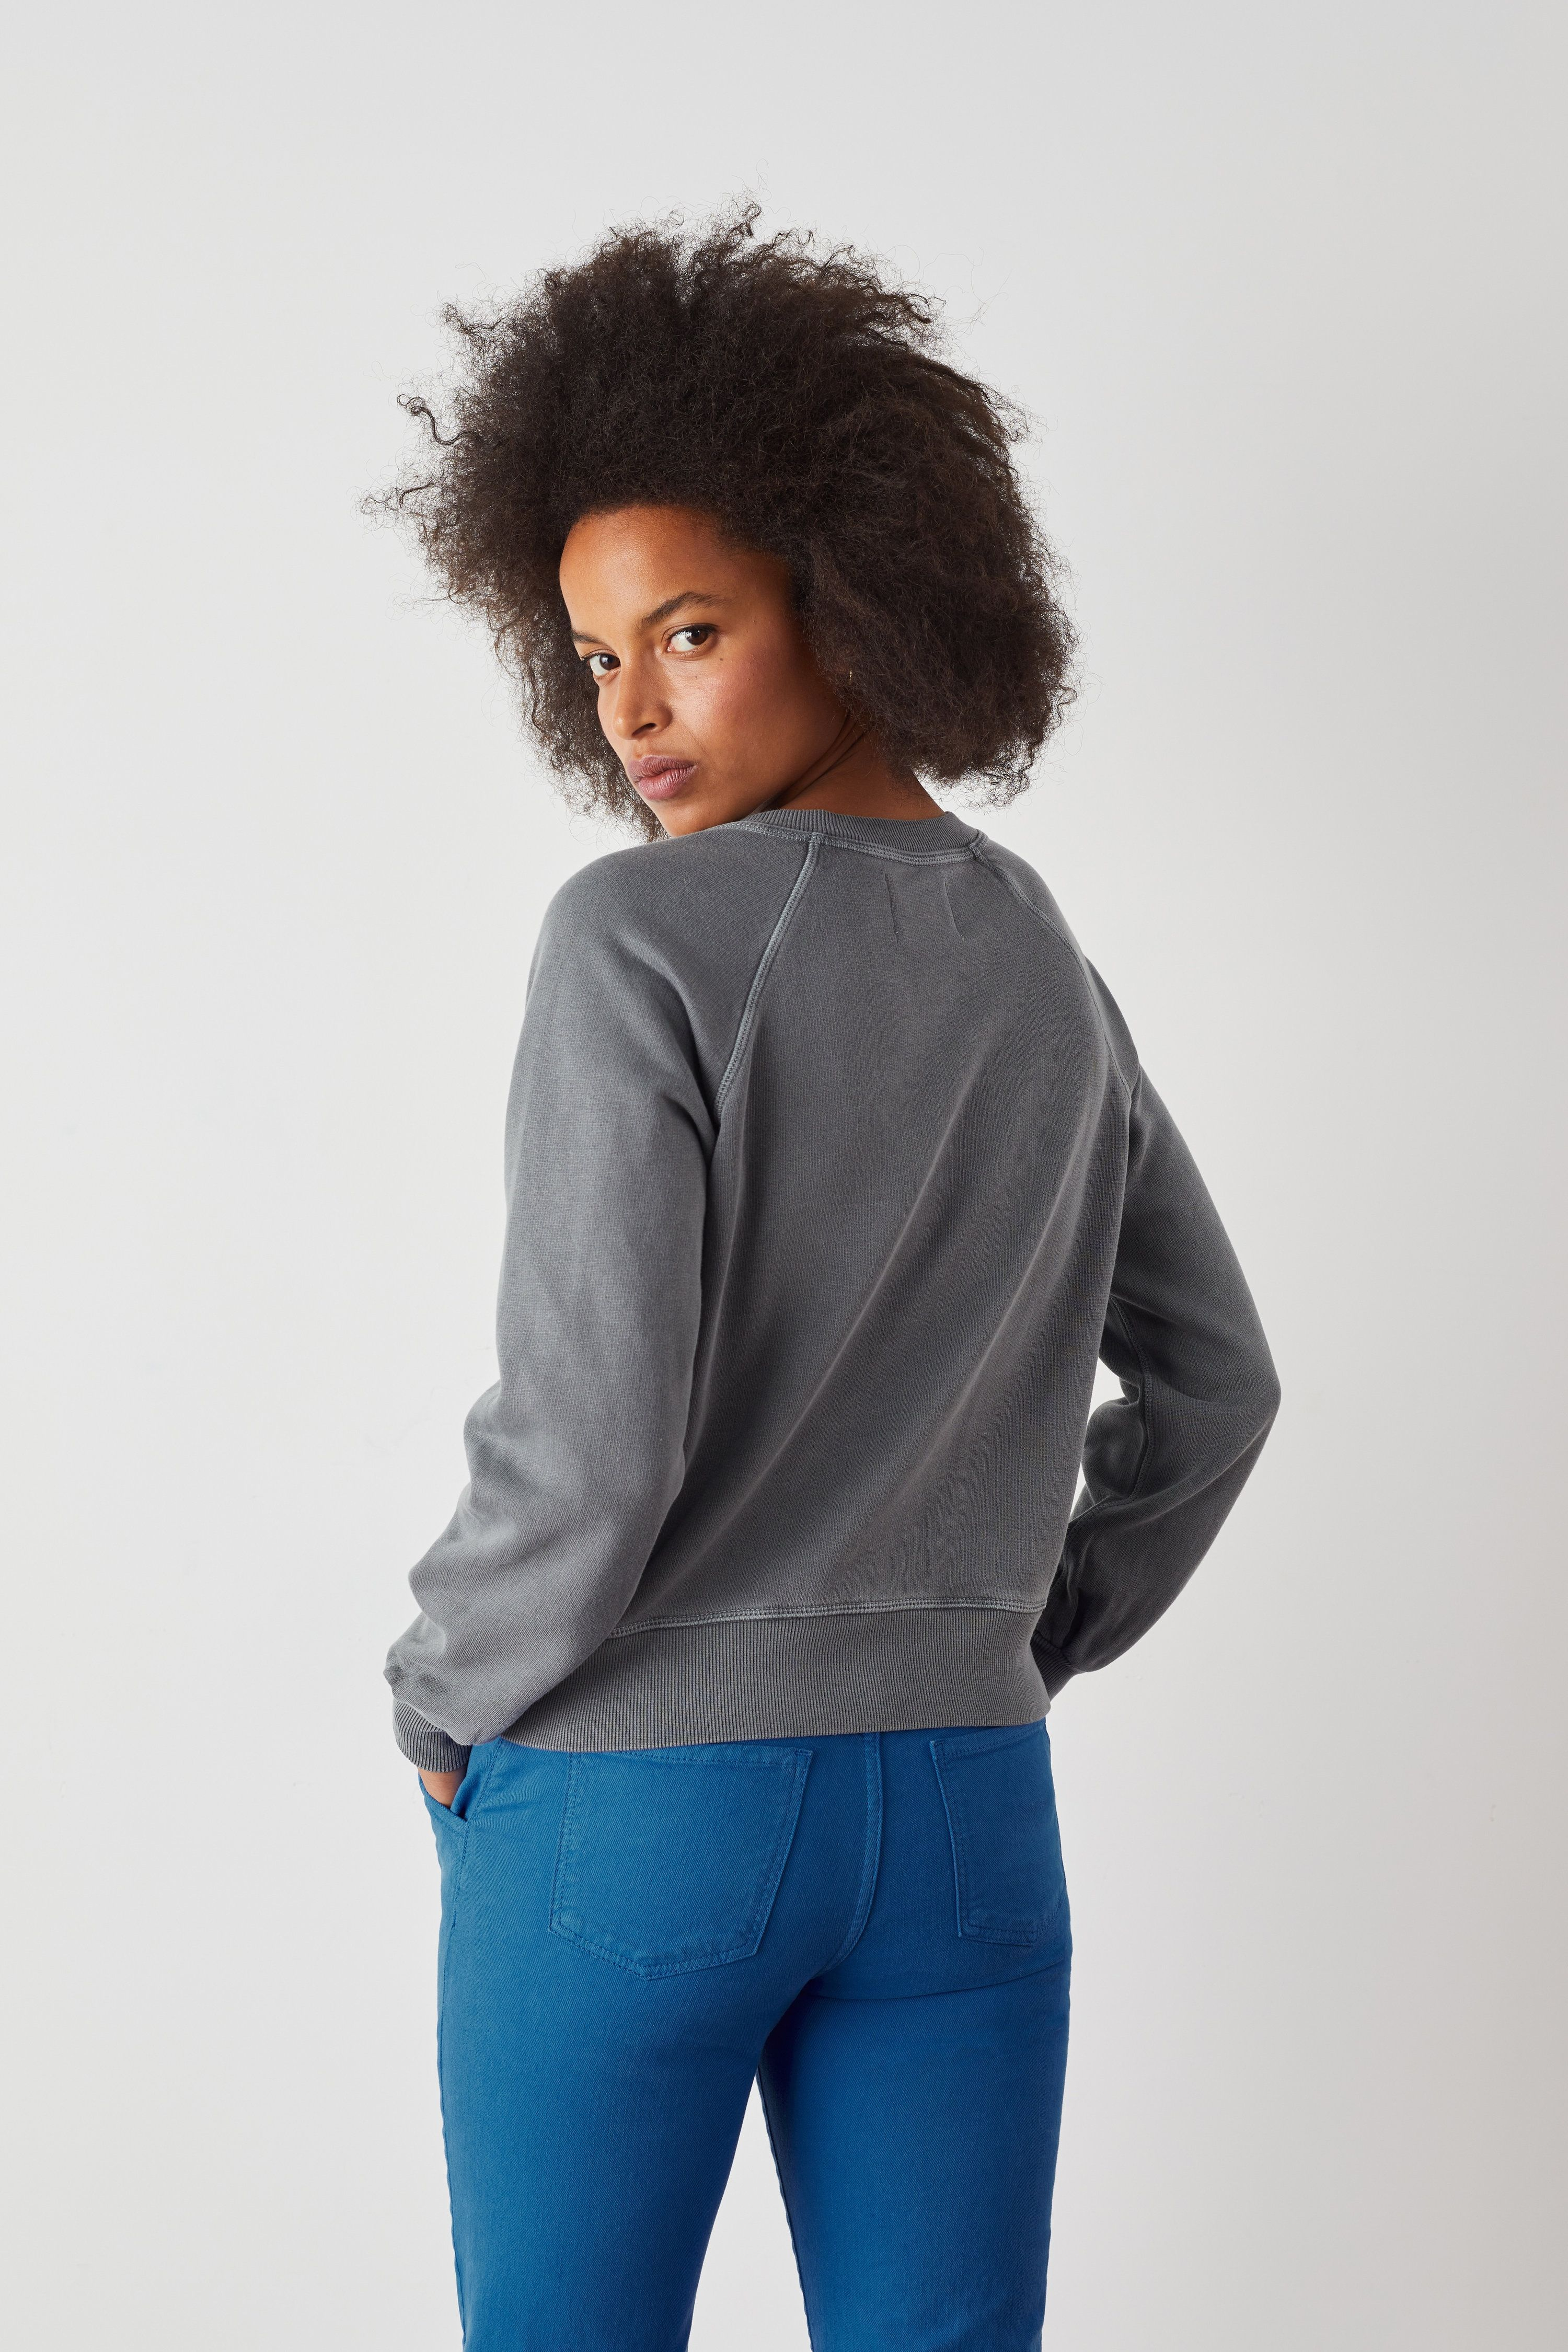 Image 4 du produit Song Plain Sweatshirt